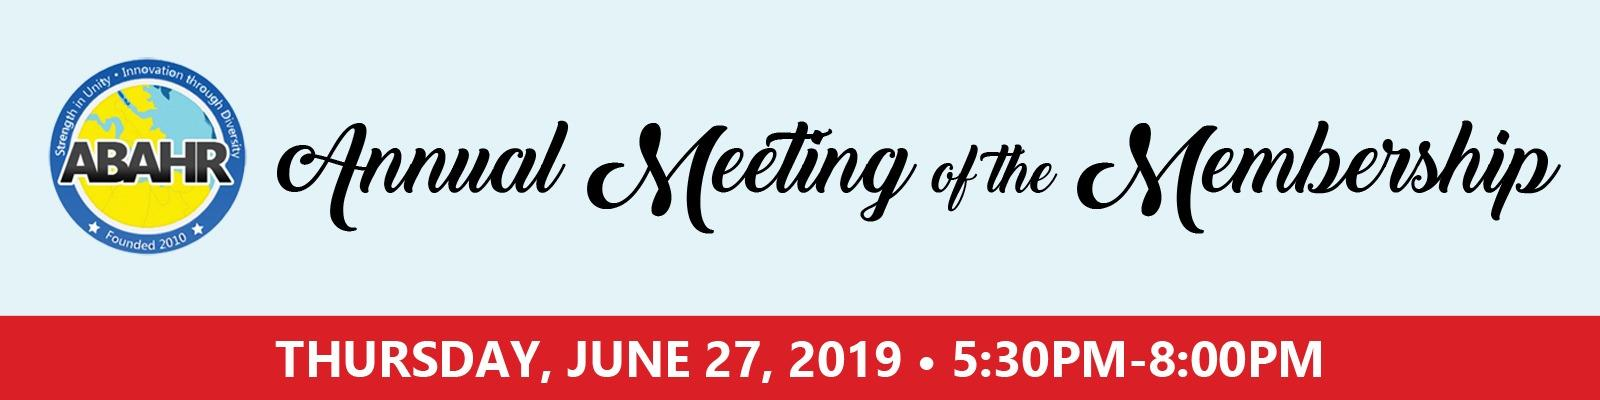 ABAHR's 10th Annual Meeting of the Membership - Thursday, June 27, 2019 - 5:30pm to 8:00pm